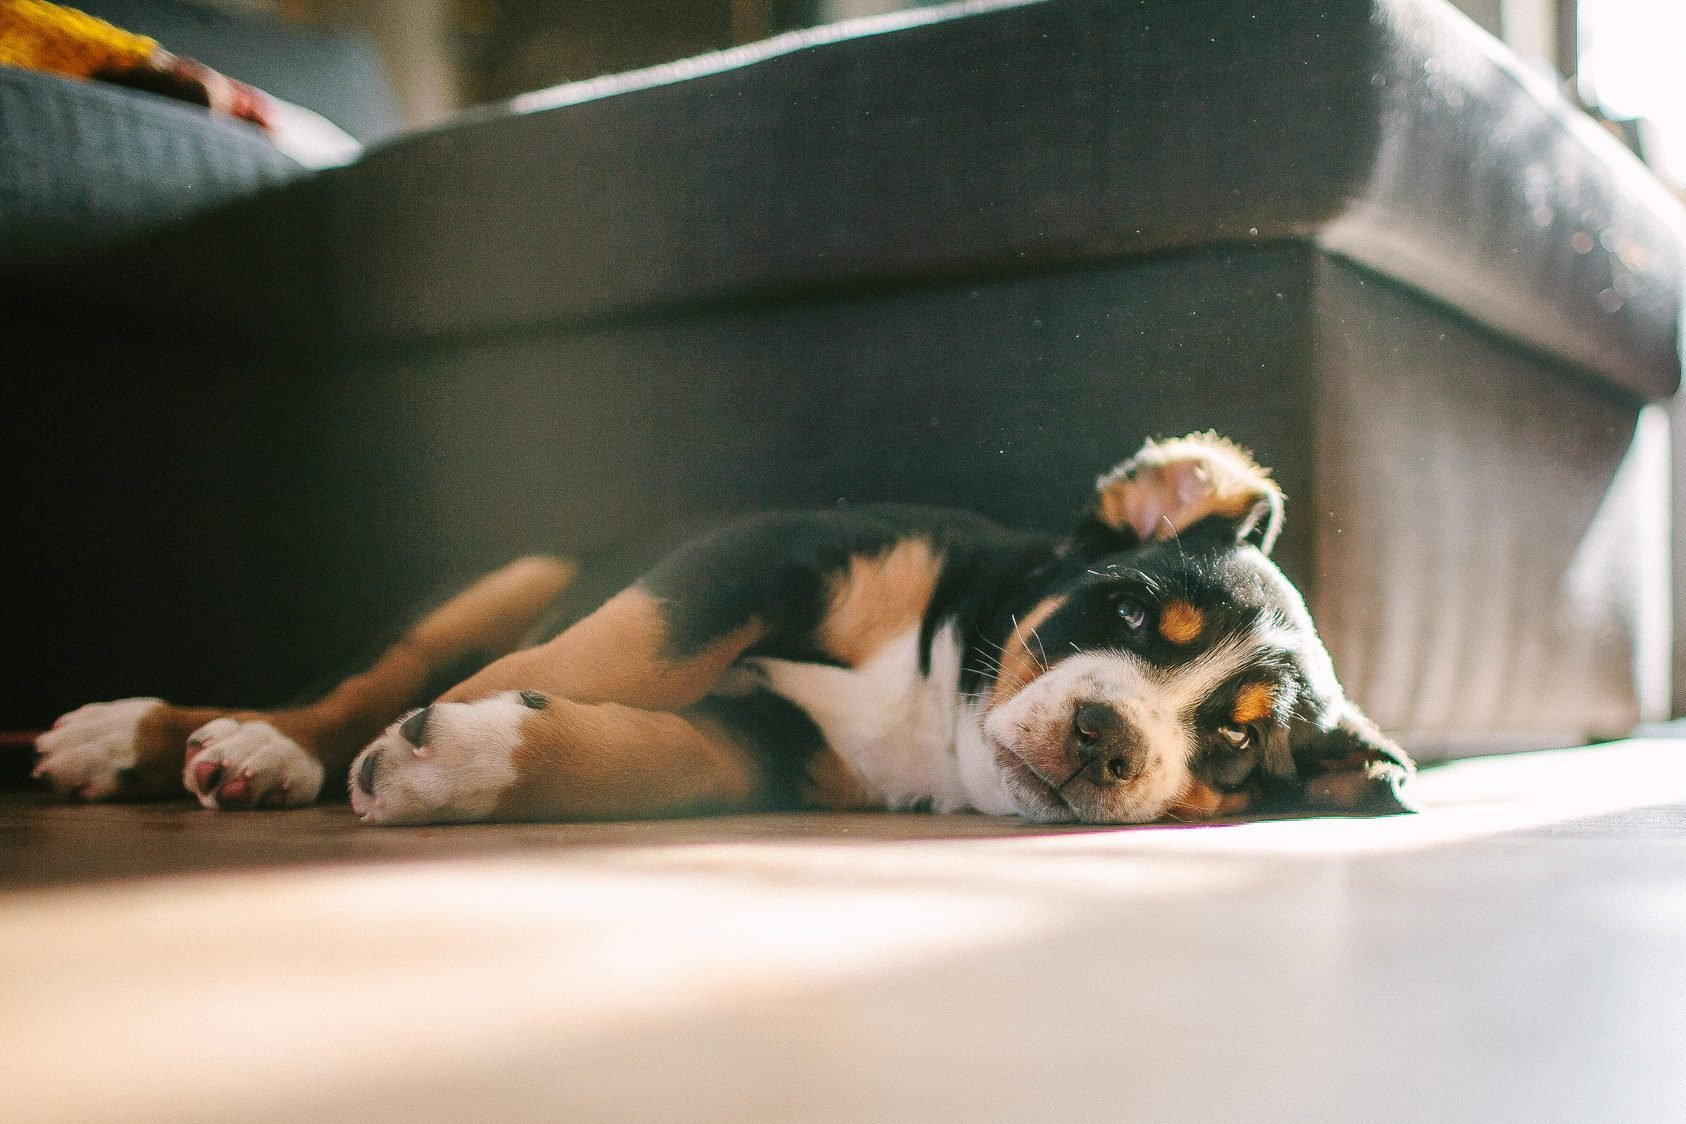 Greater mountain swiss dog puppies laying on the floor